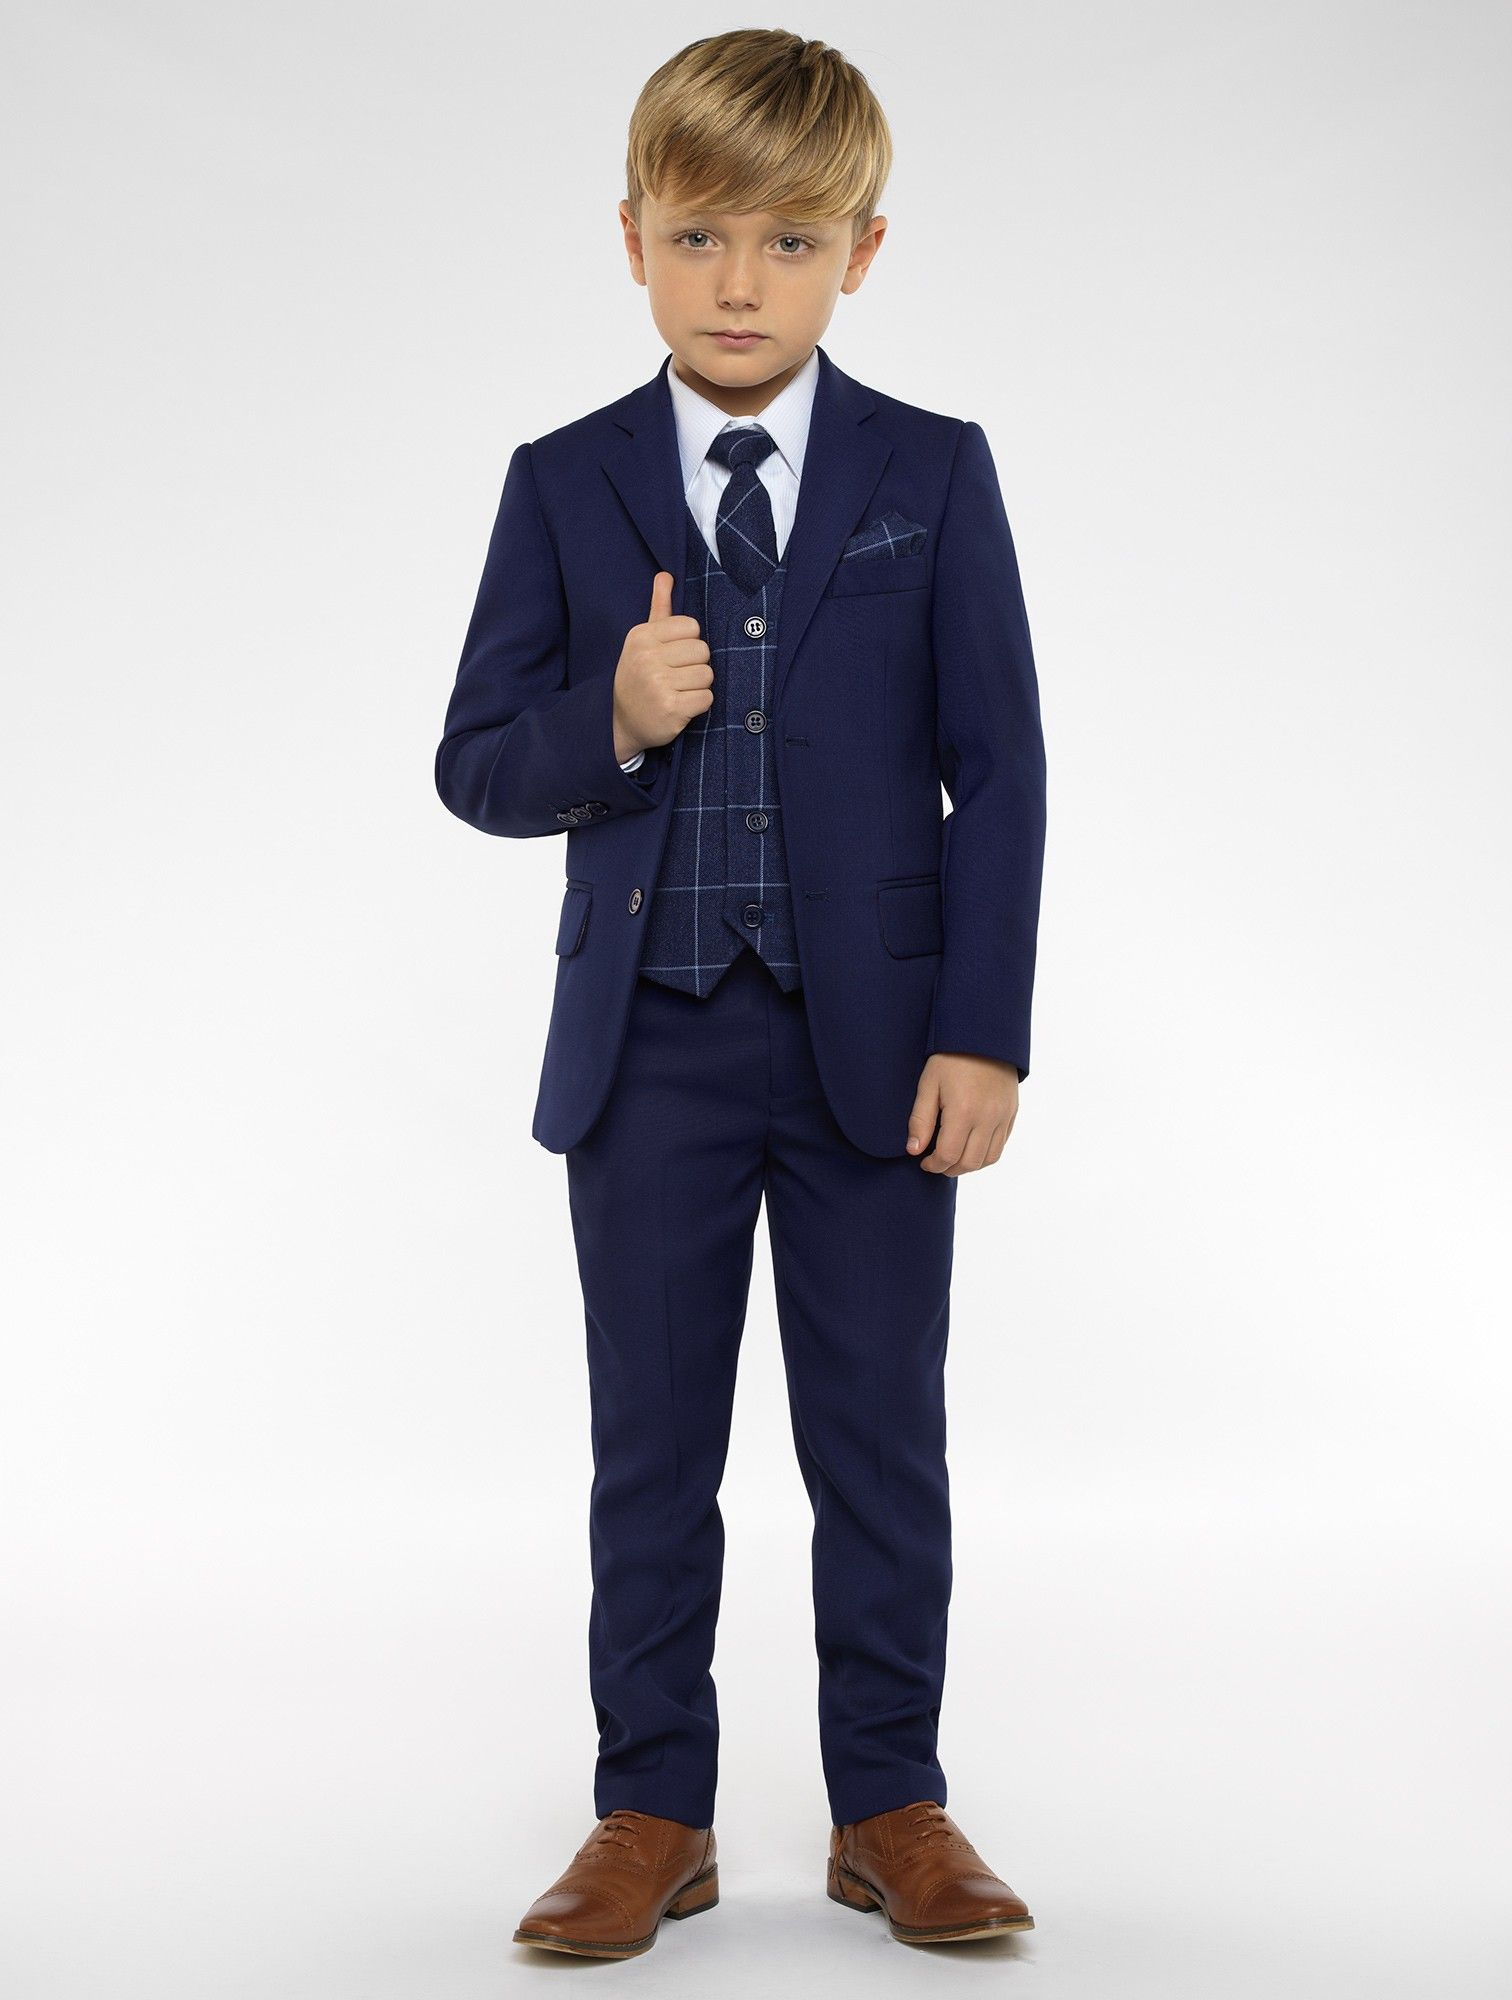 Shop for boys blue u navy slim fit suit kingsman at roco perfect as